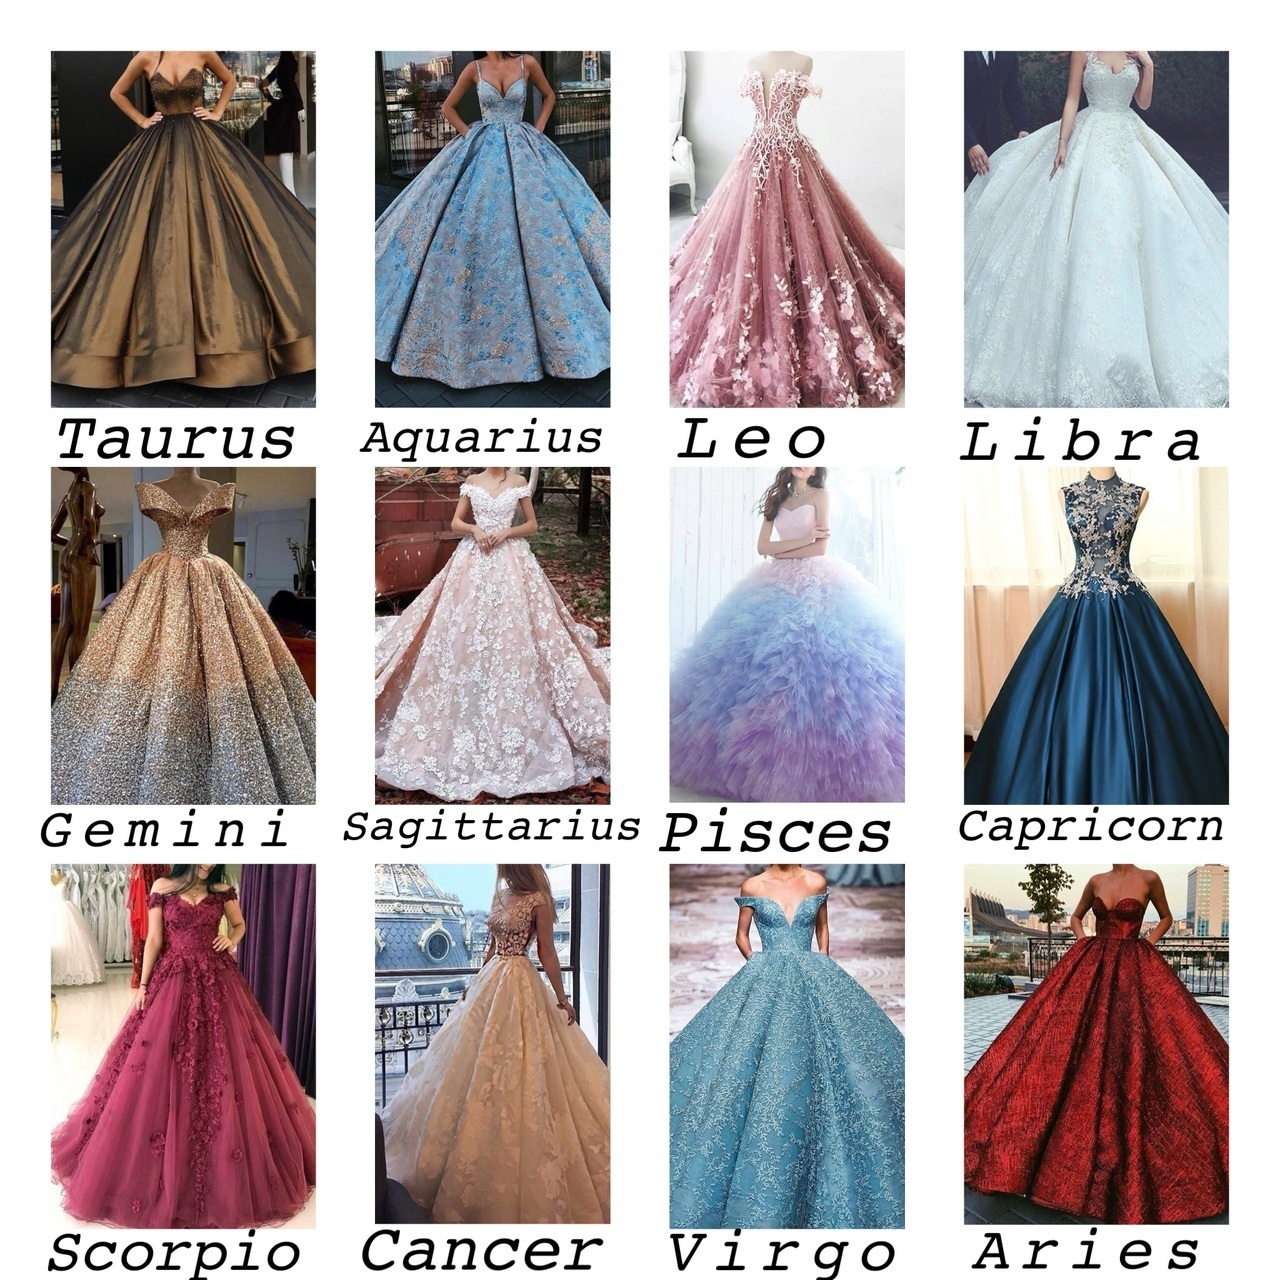 Zodiac signs and their Princess dress on We Heart It